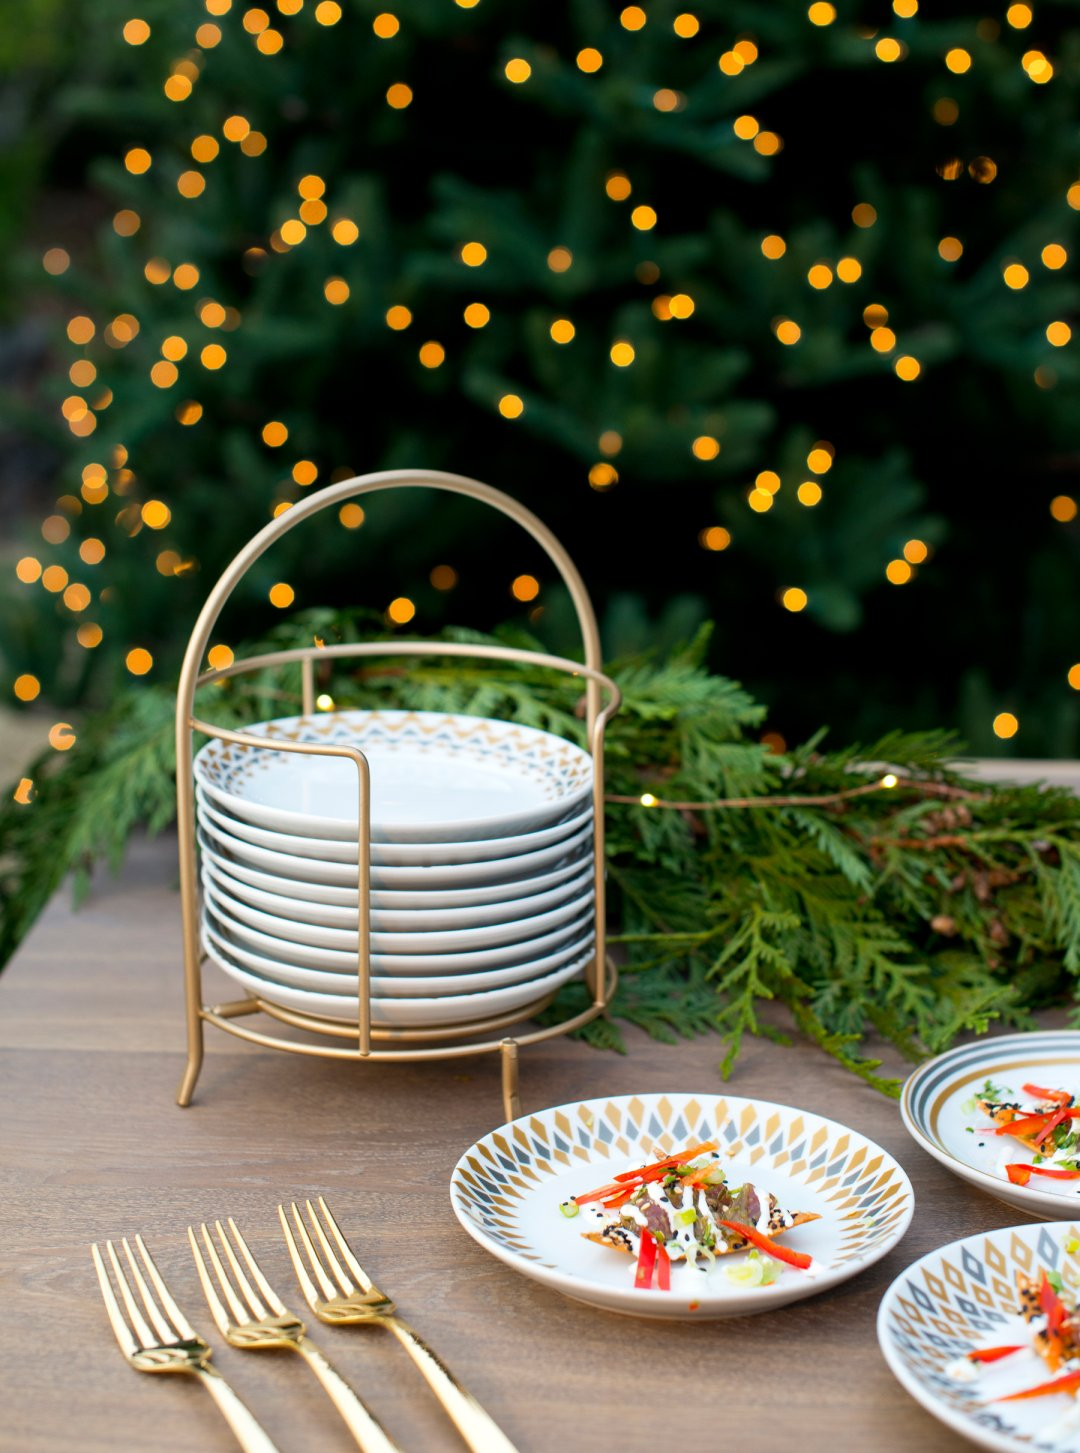 stack of plates in a rack sits near three forks and plates with food in front of a christmas tree